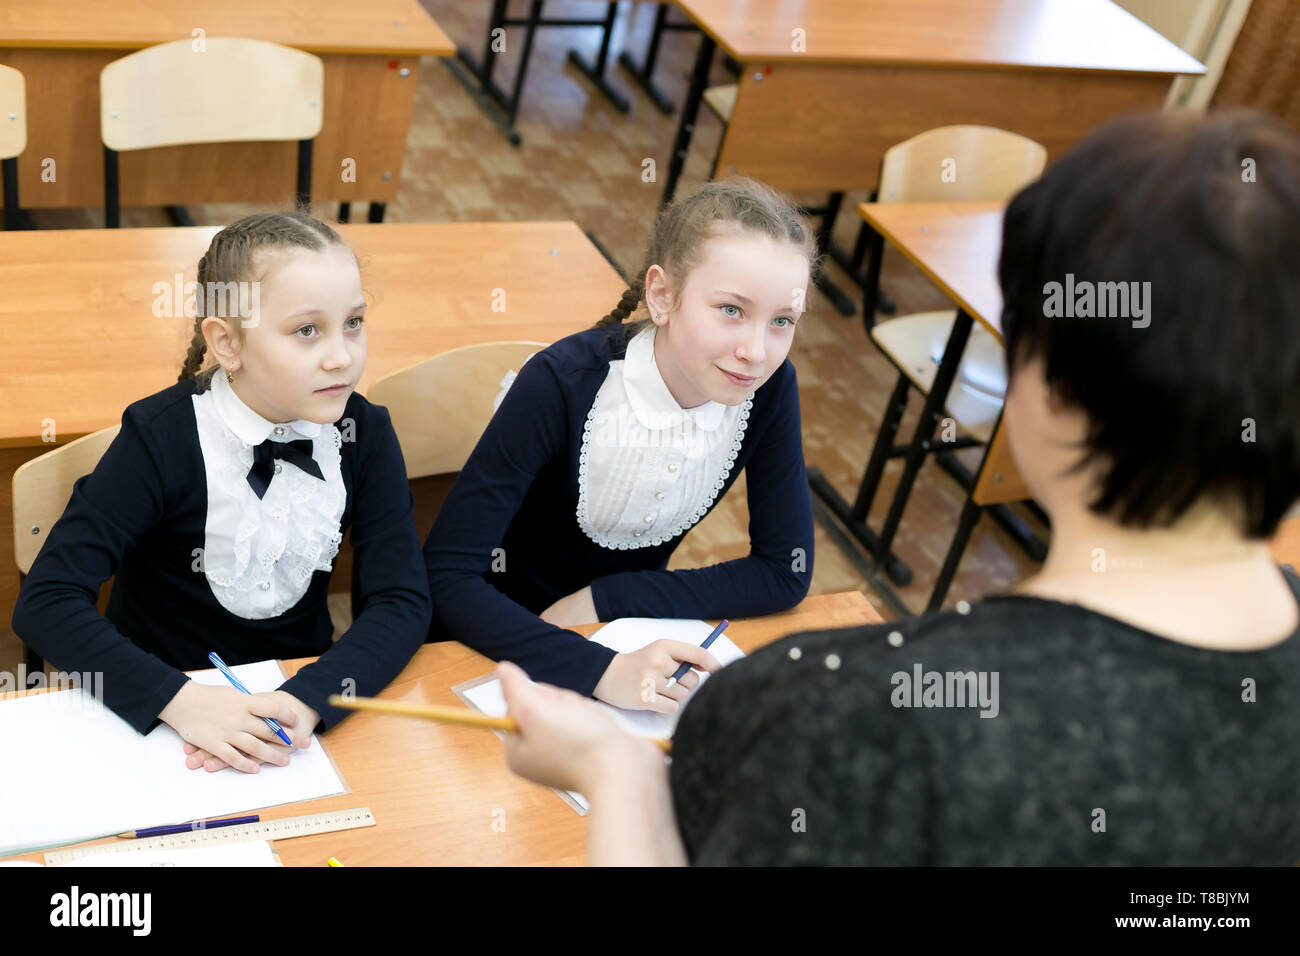 Teenage girls classmates sit at table and with fear look at the school teacher. - Stock Image